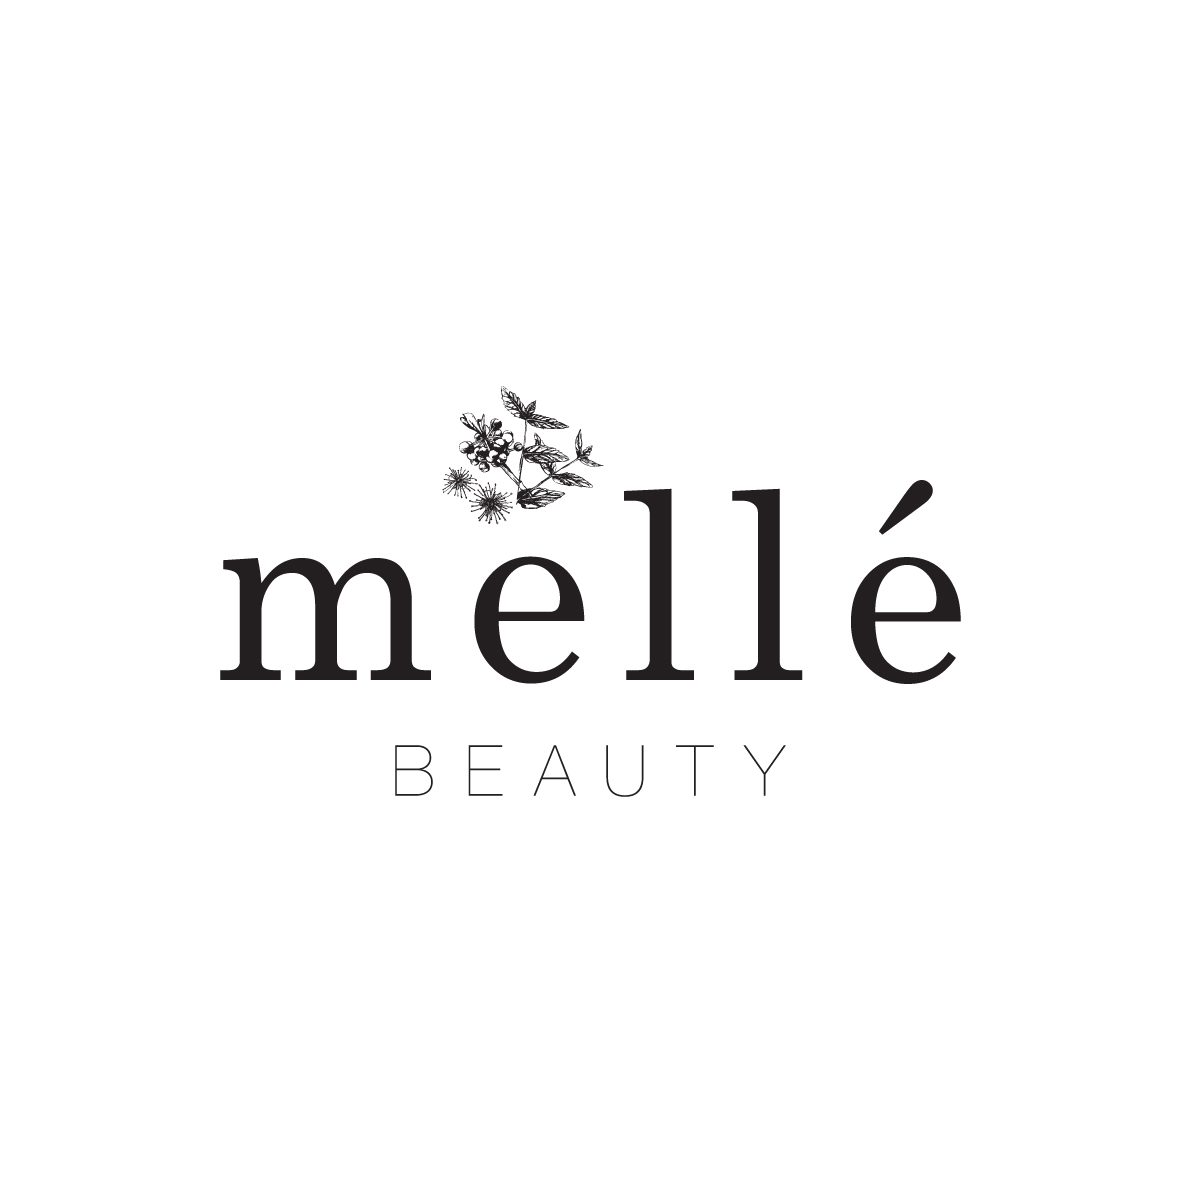 MELLE BEAUTY.jpg